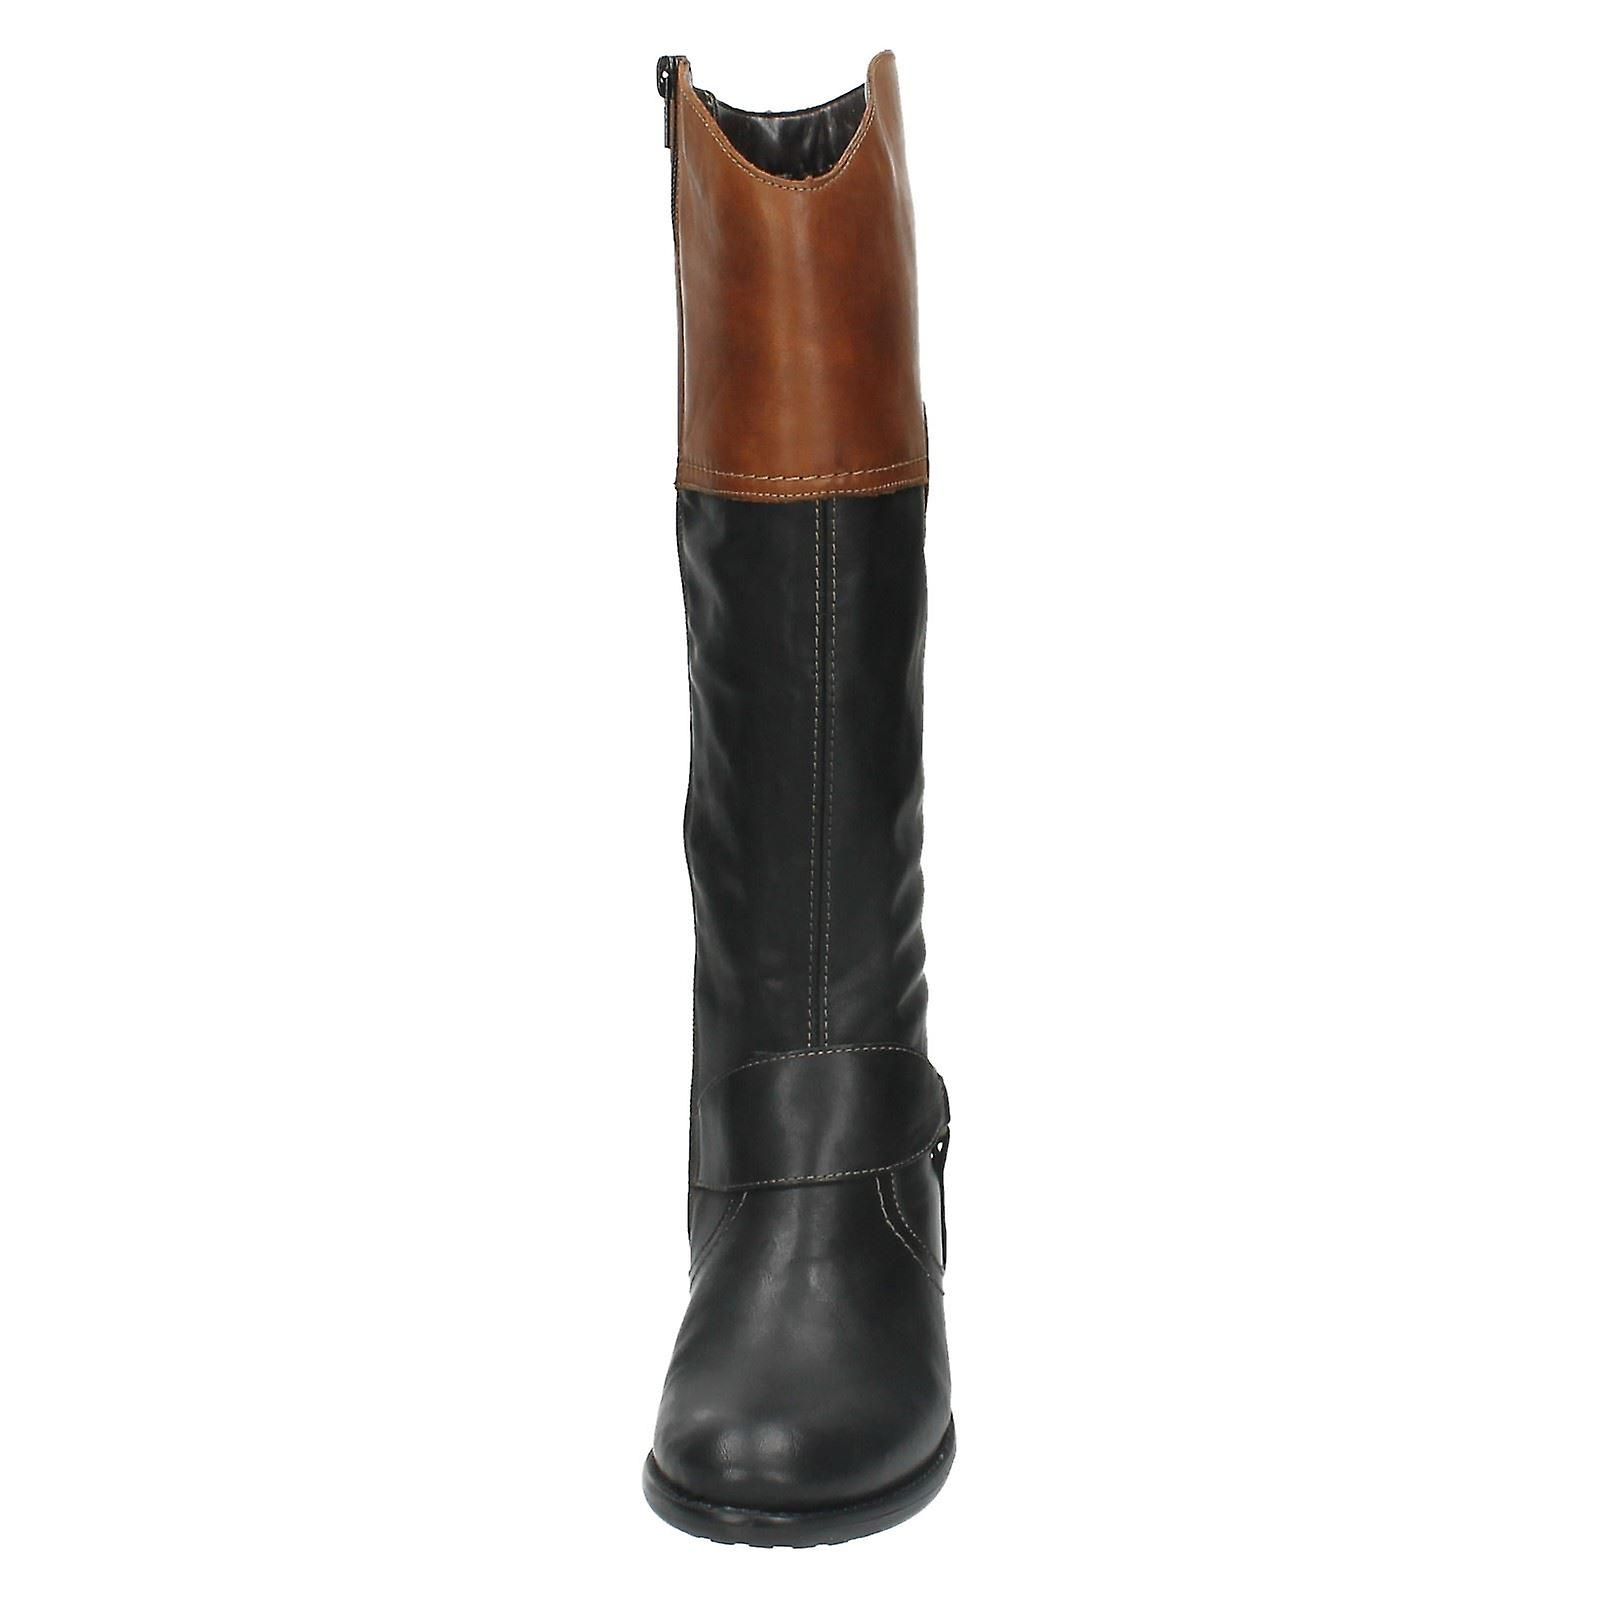 Bottes Chaussures Remonte Mesdames Jambe Haut R6474 qwvxYt0